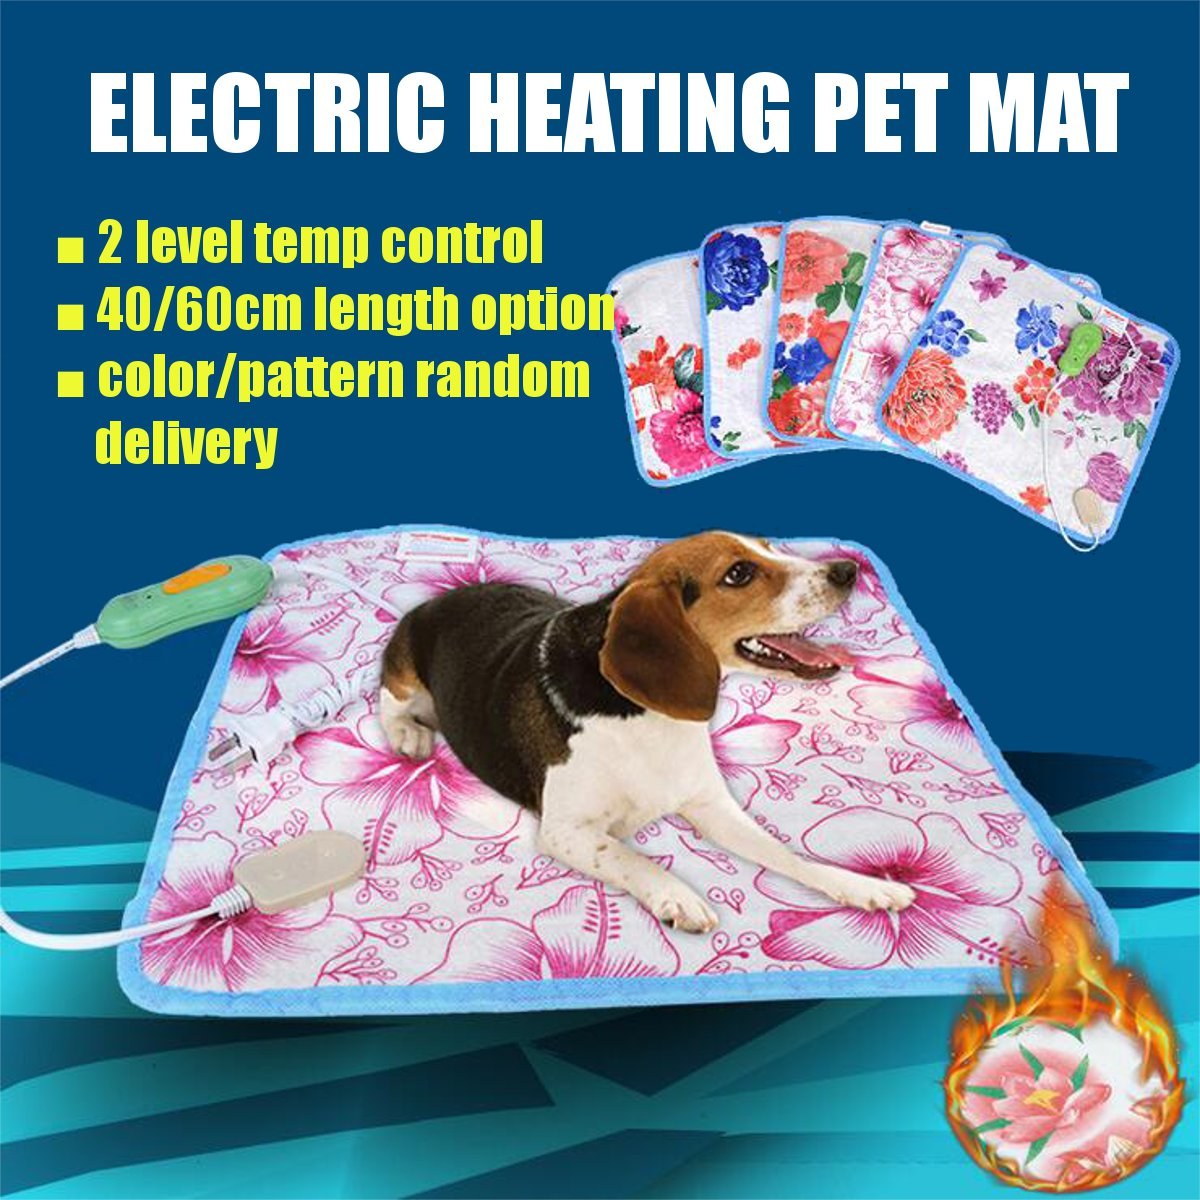 40x40/60cm Electric Heating Pad Blanket Pet Mat Bed Cat Dog Winter Warmer Pad Home Office Chair Heated Mat 220V Random Patterns